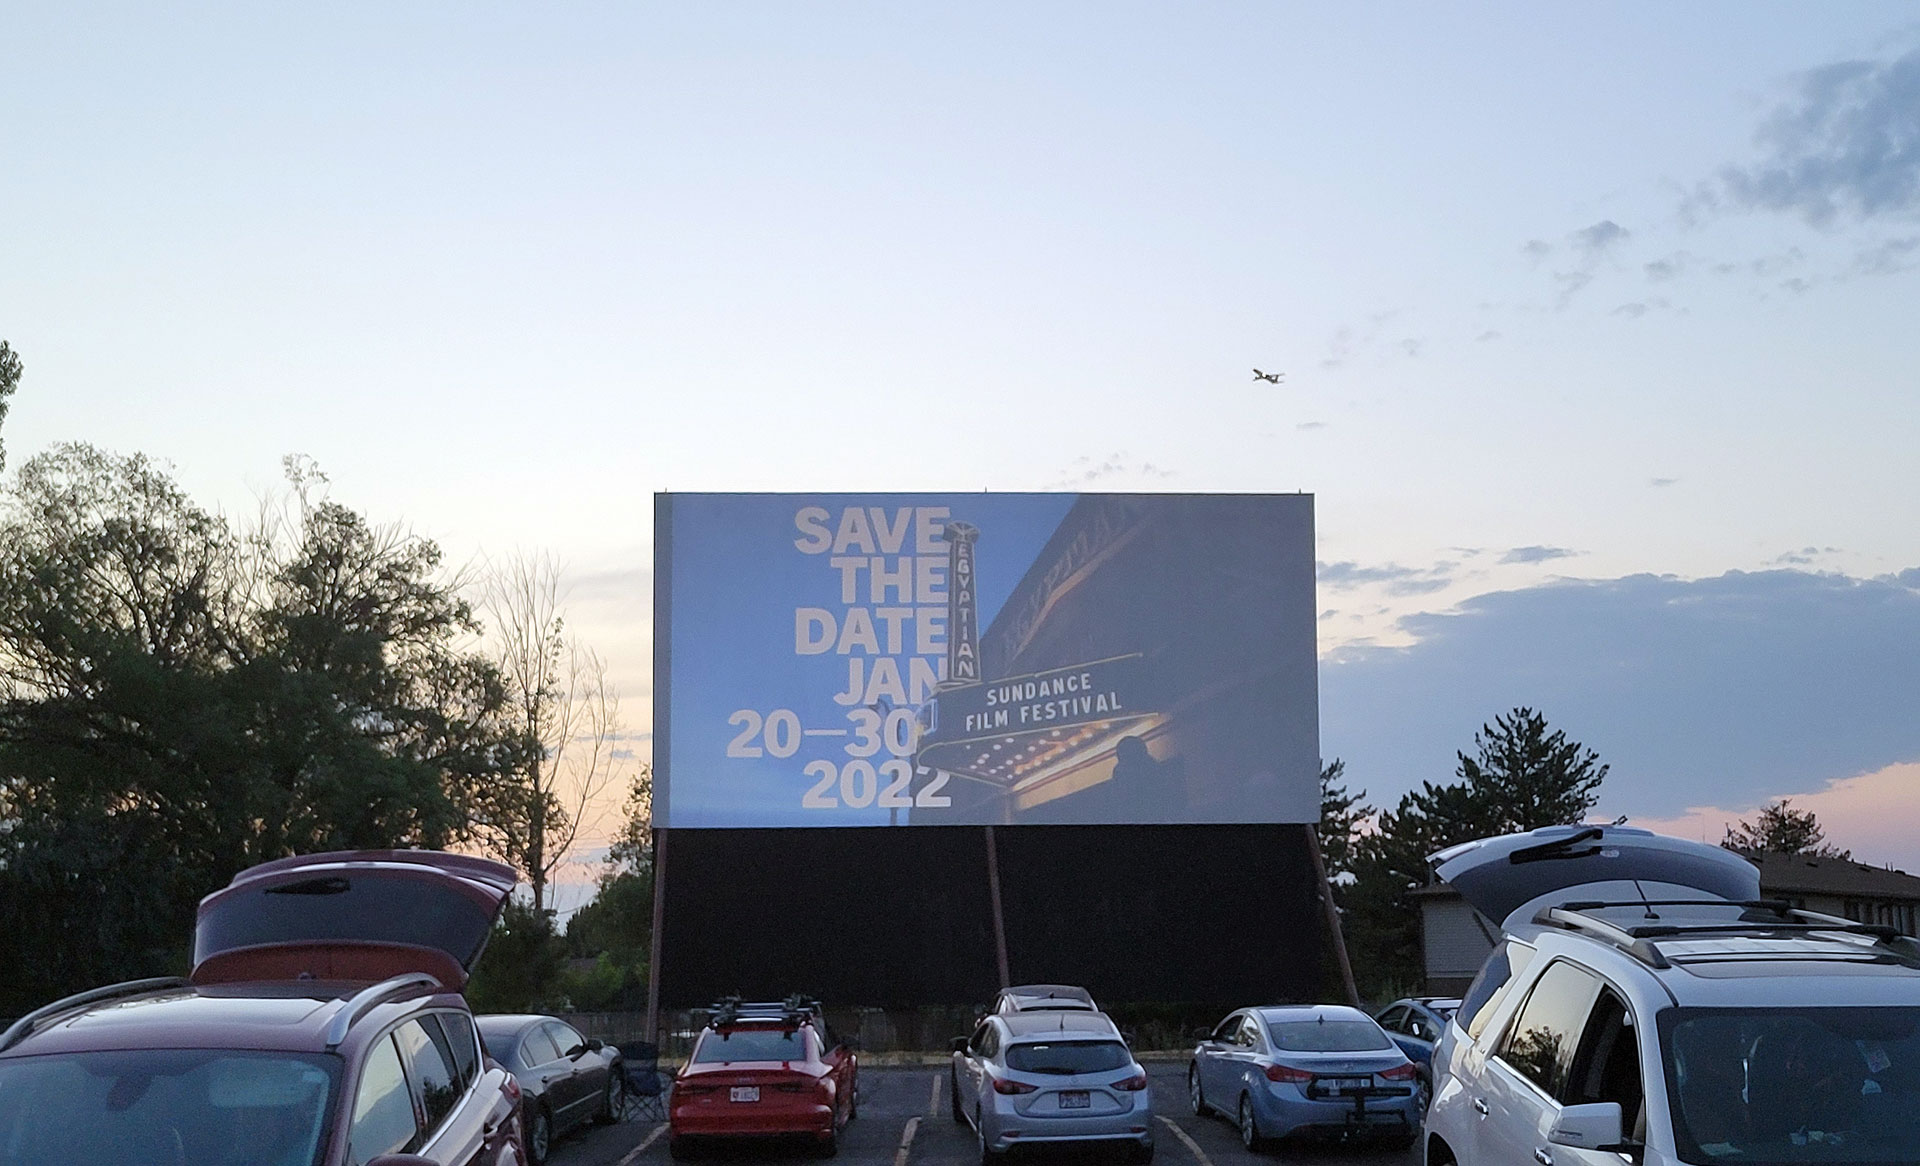 Cars parked in front of giant projection screen